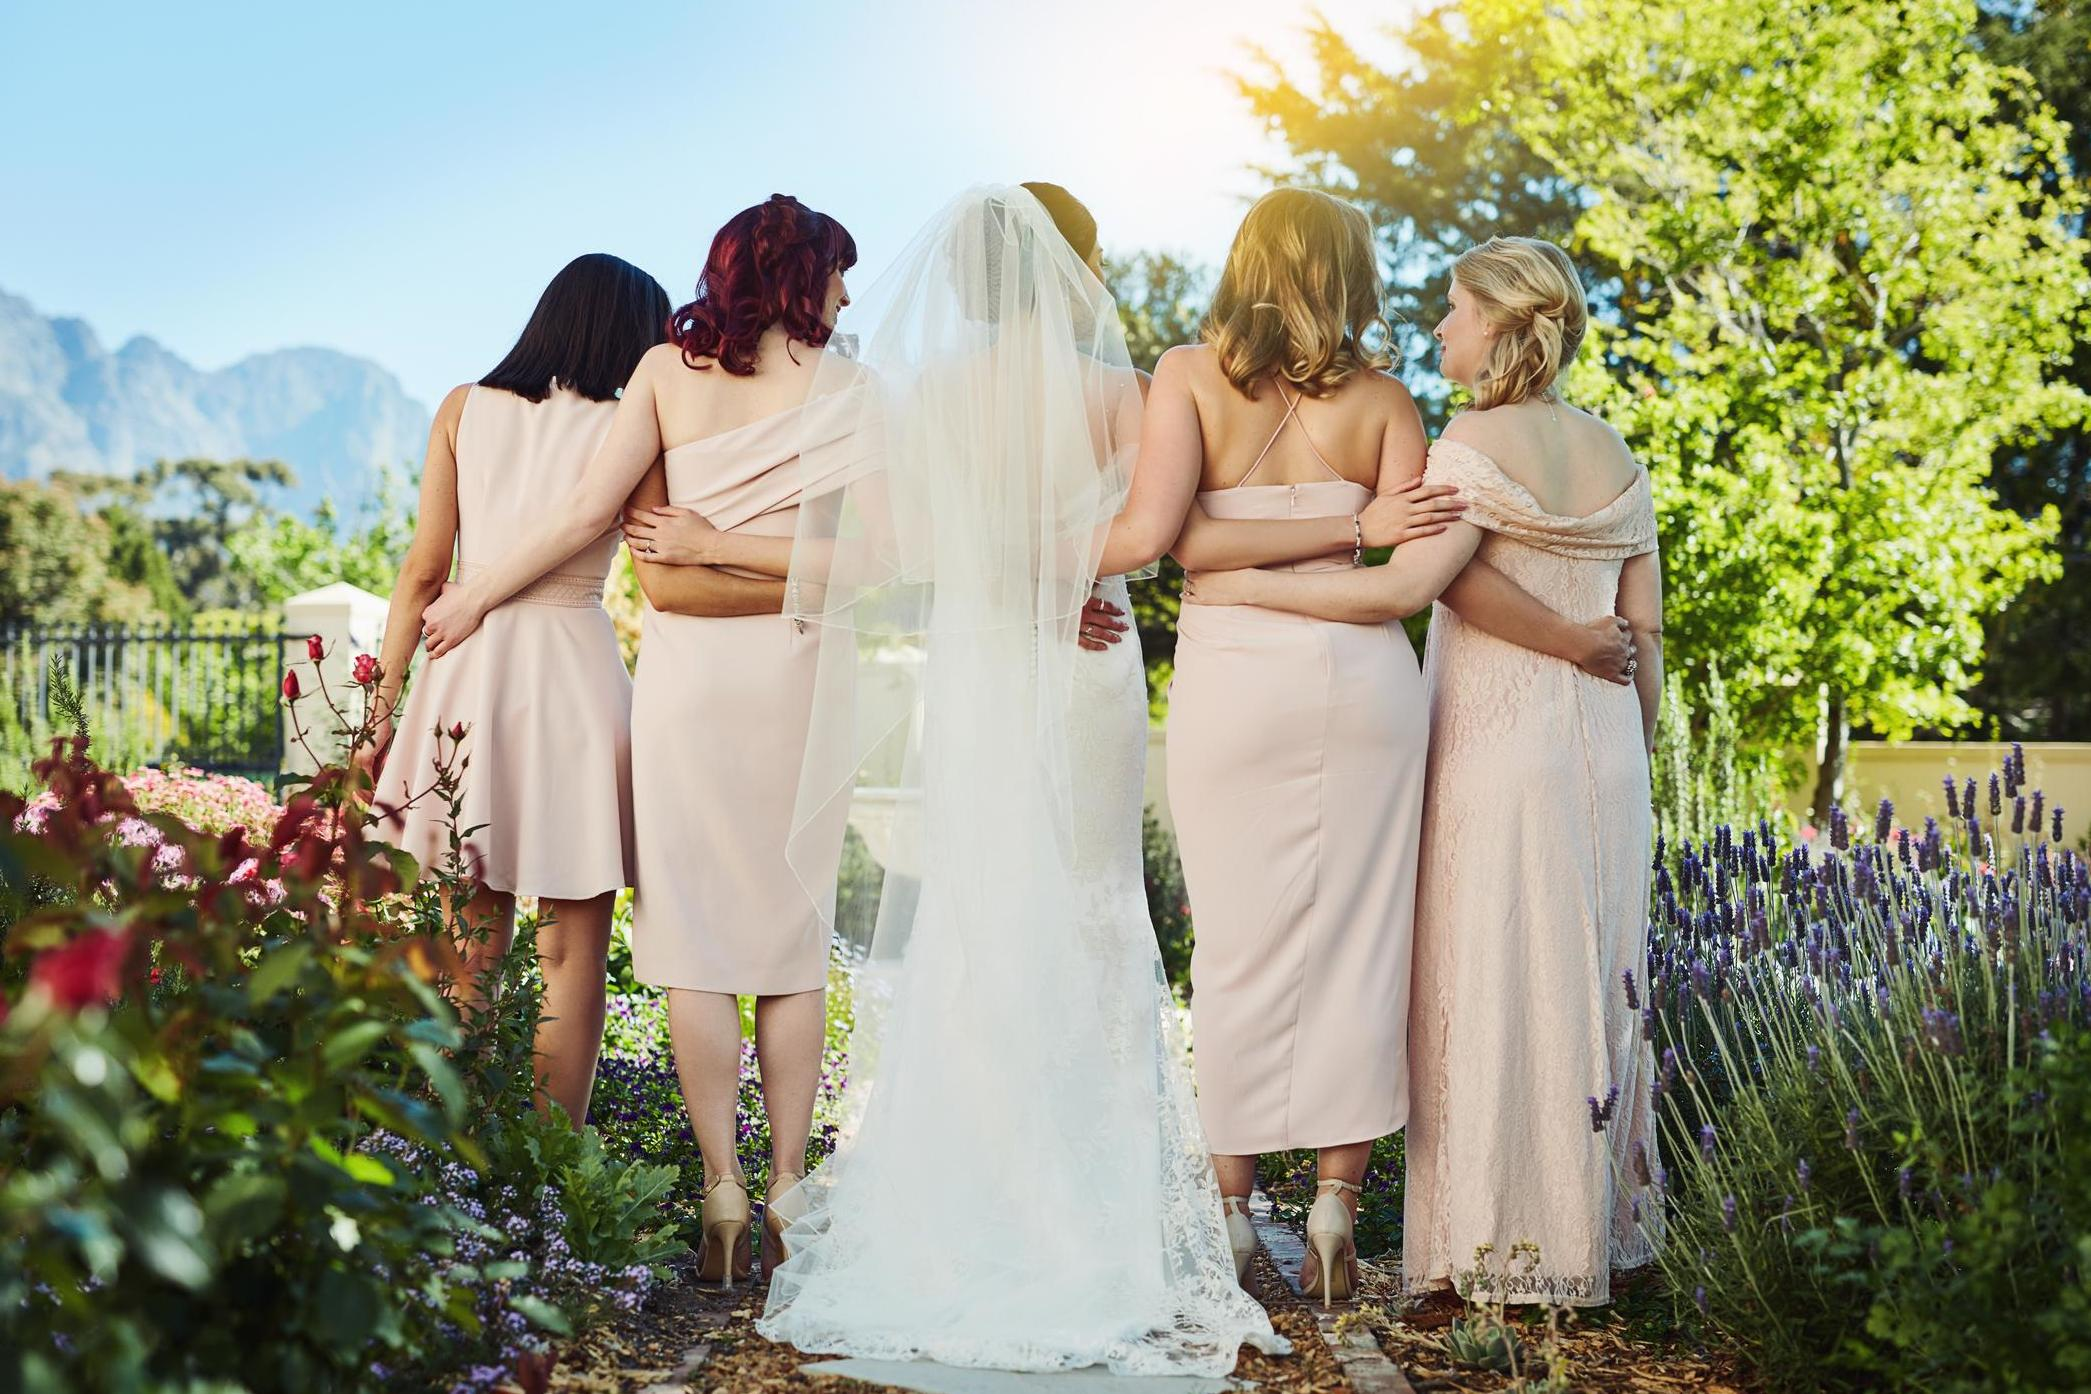 ede09e921c Love   Sex · Bride tells guests to wear their old wedding dresses · Fashion  · Bride and bridesmaids praised for  magnificent  dresses with pockets